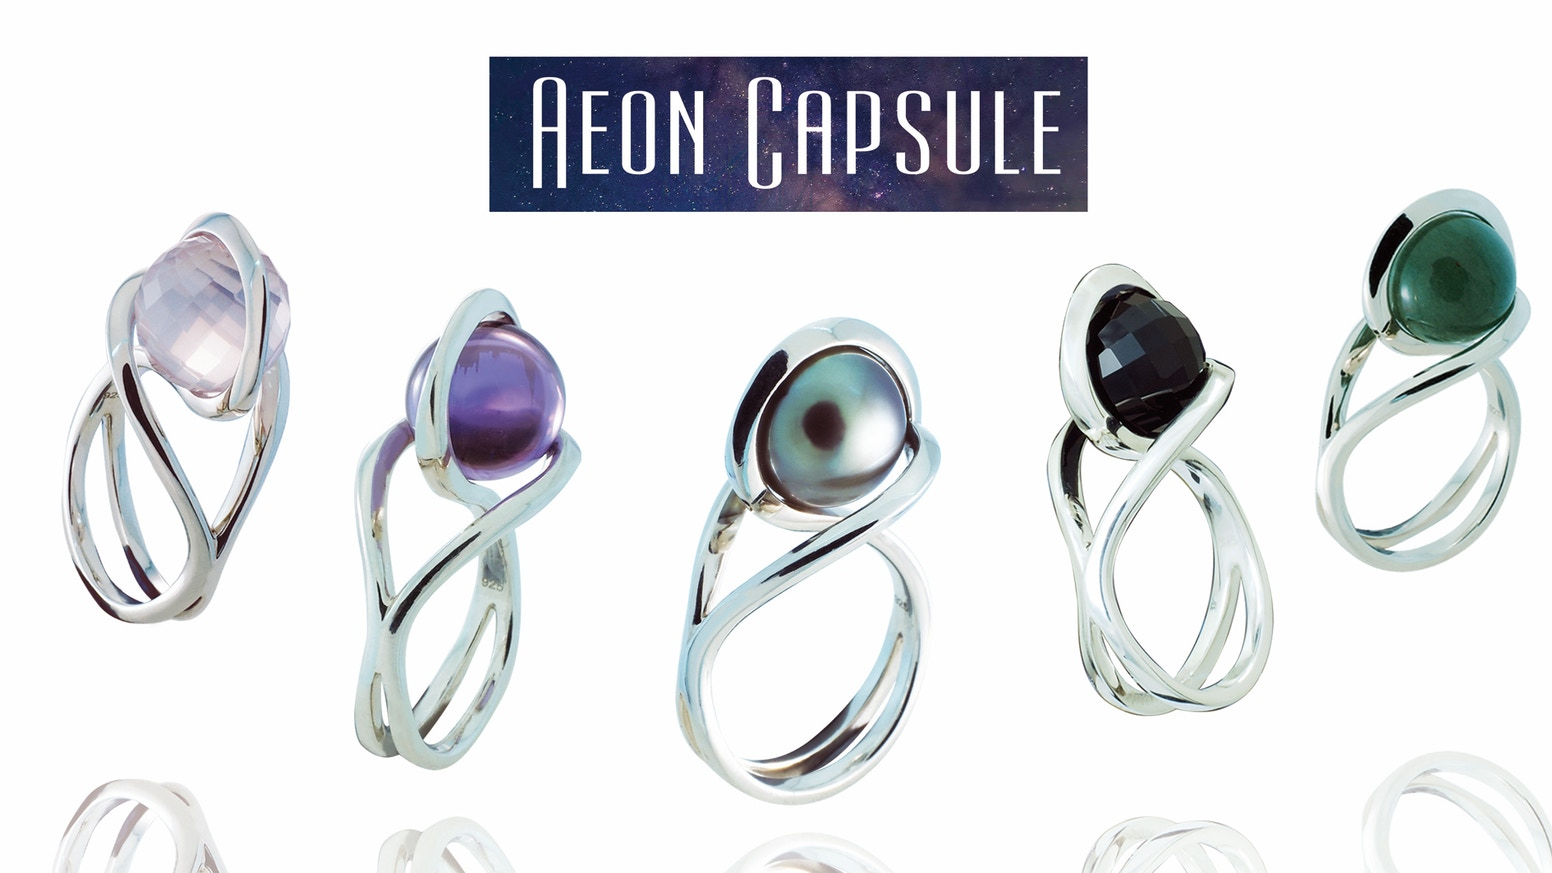 Aeon Capsule - Your Ring Your World